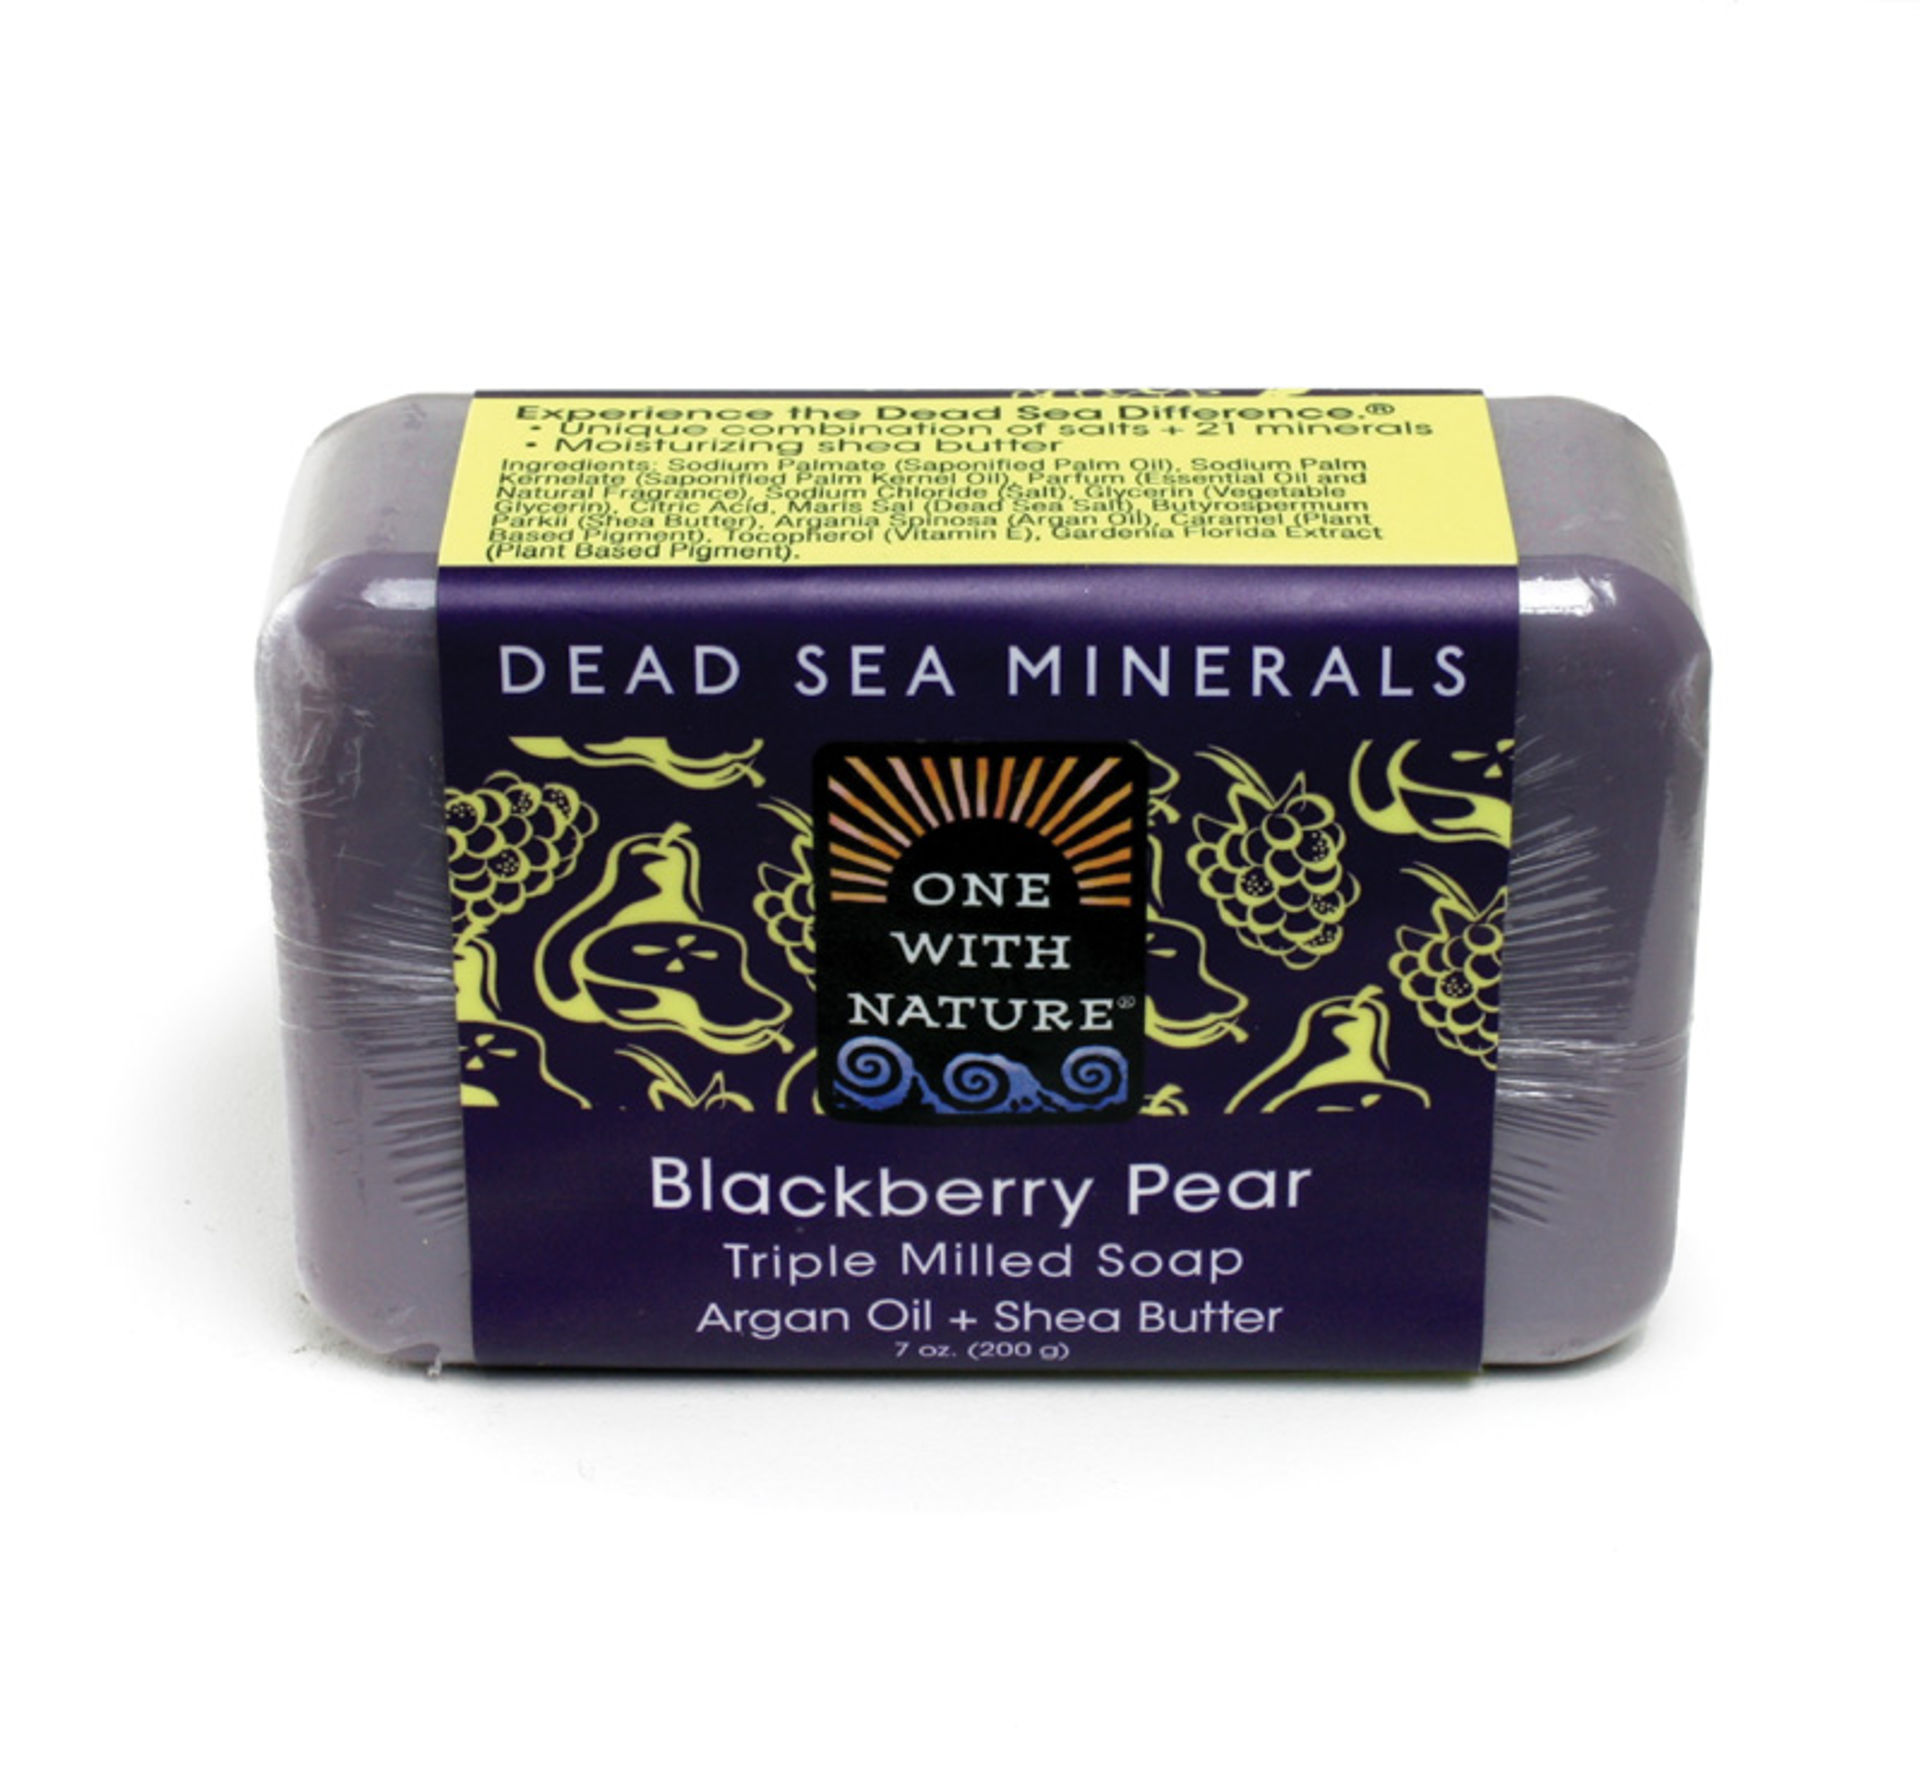 Picture of Blackberry Pear Shea/Argan Soap - 7 oz.